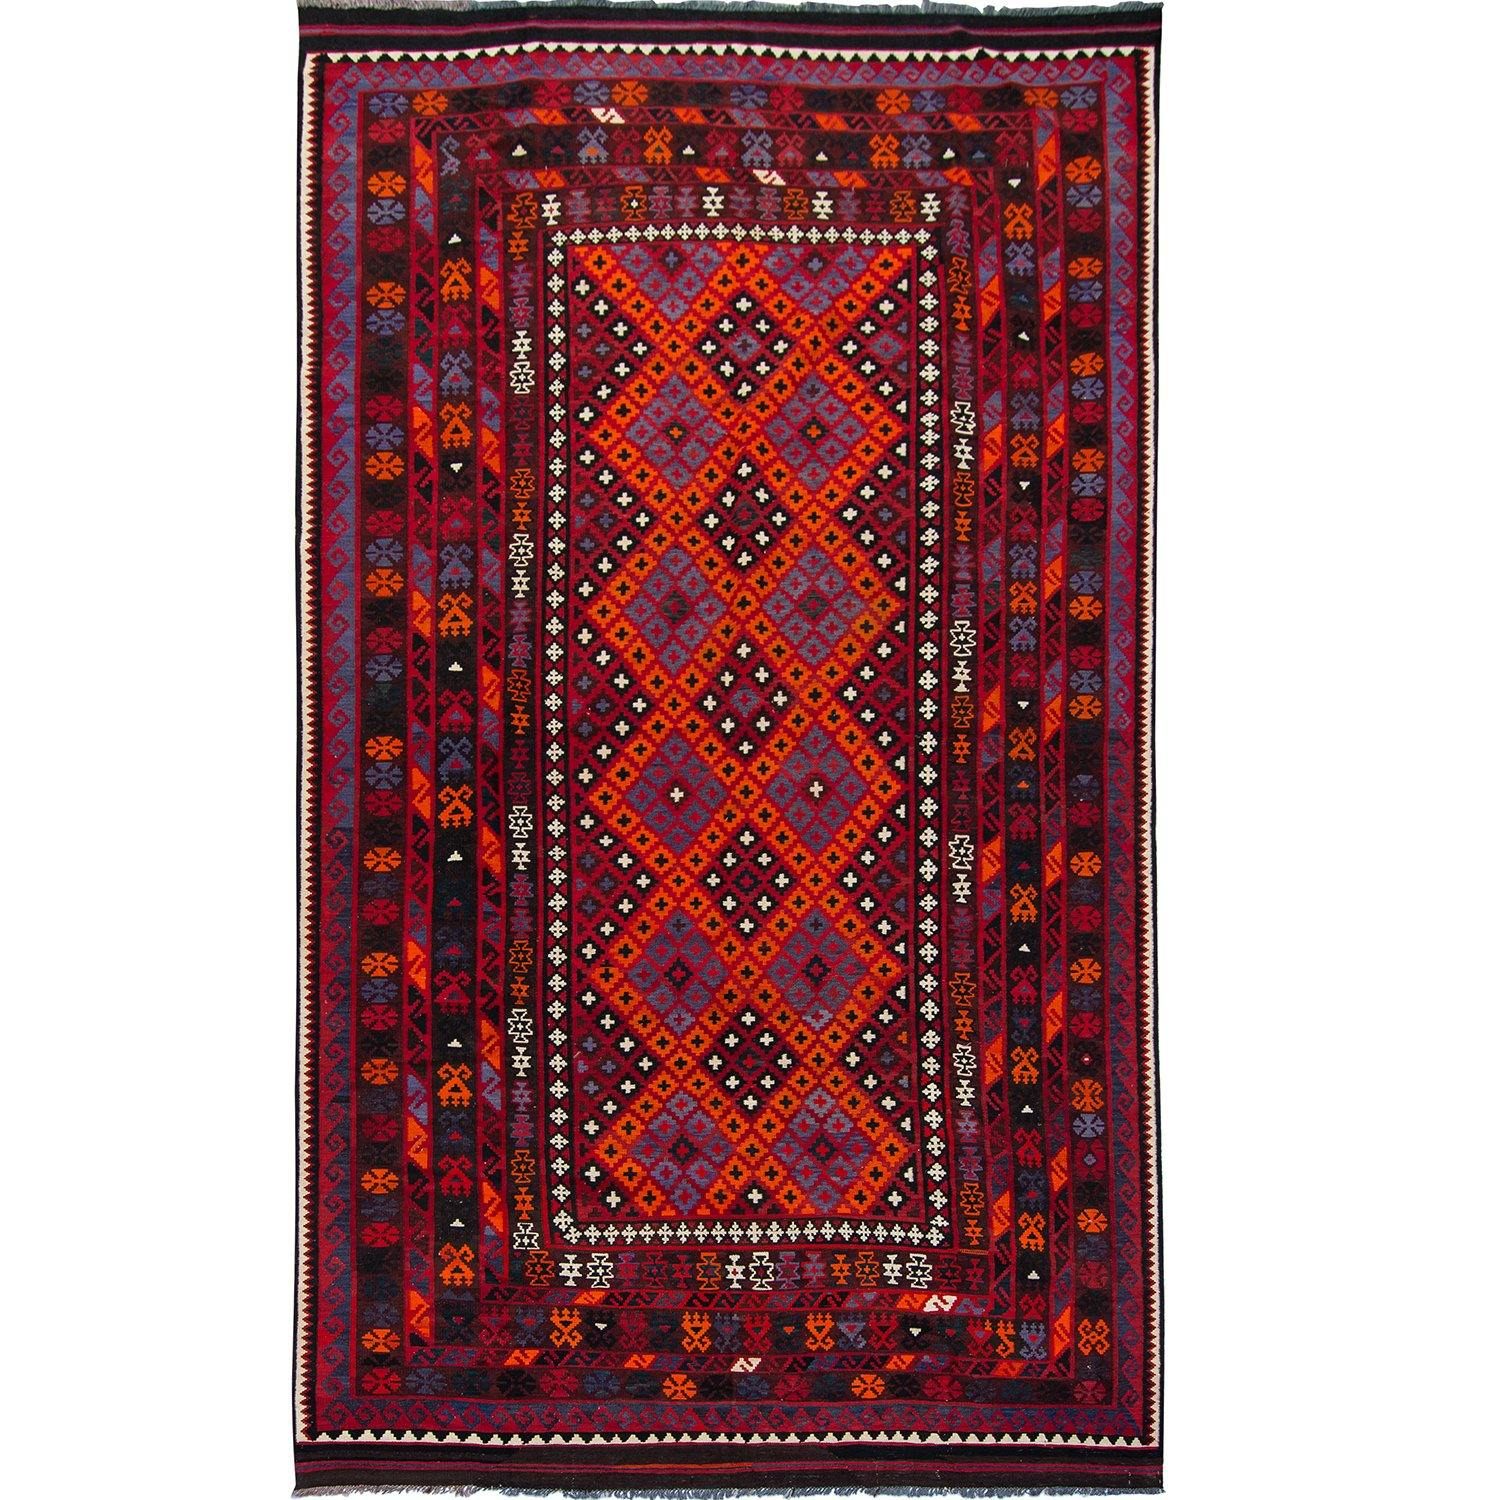 Fine Hand-woven 100% Wool Kilim Rug 255cm x 496cm Persian-Rug | House-of-Haghi | NewMarket | Auckland | NZ | Handmade Persian Rugs | Hand Knotted Persian Rugs